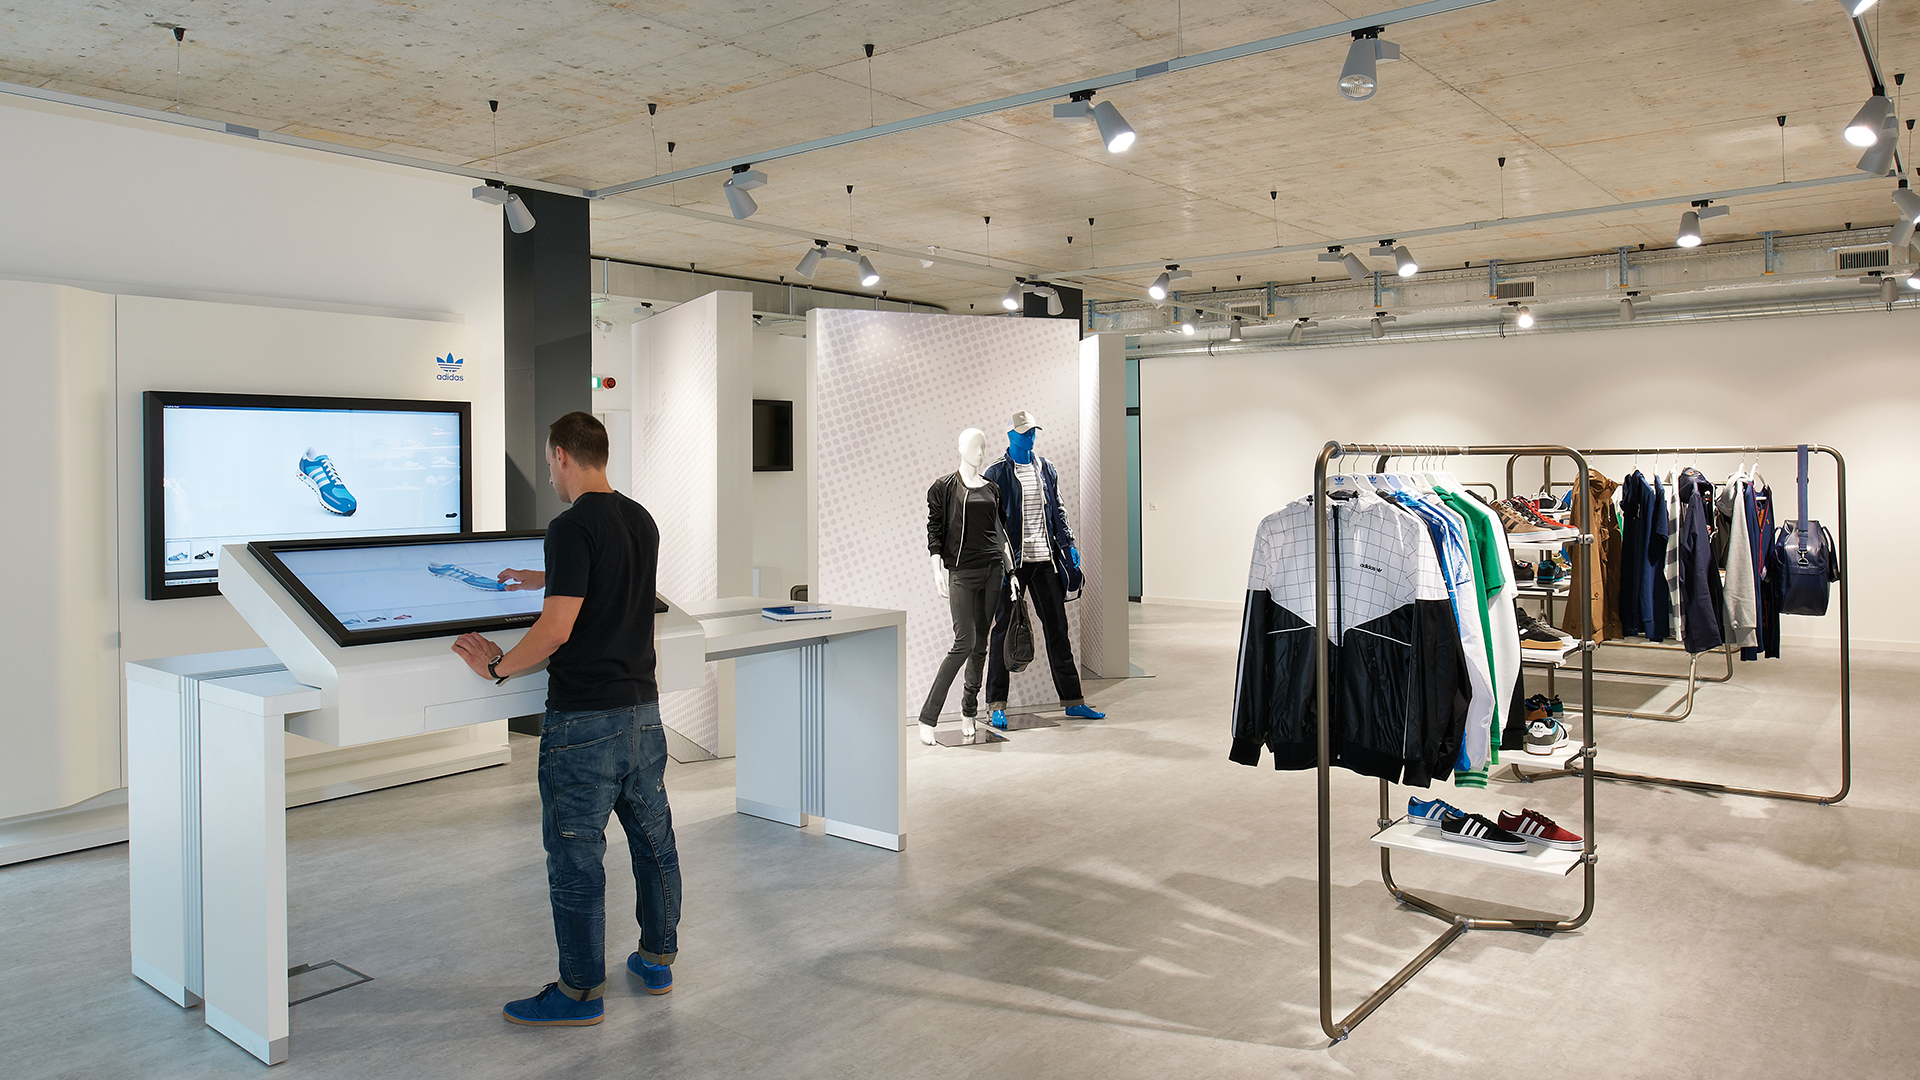 Dart stages the shop concept for adidas Originals in the cities of Fribourg, Zurich and Munich